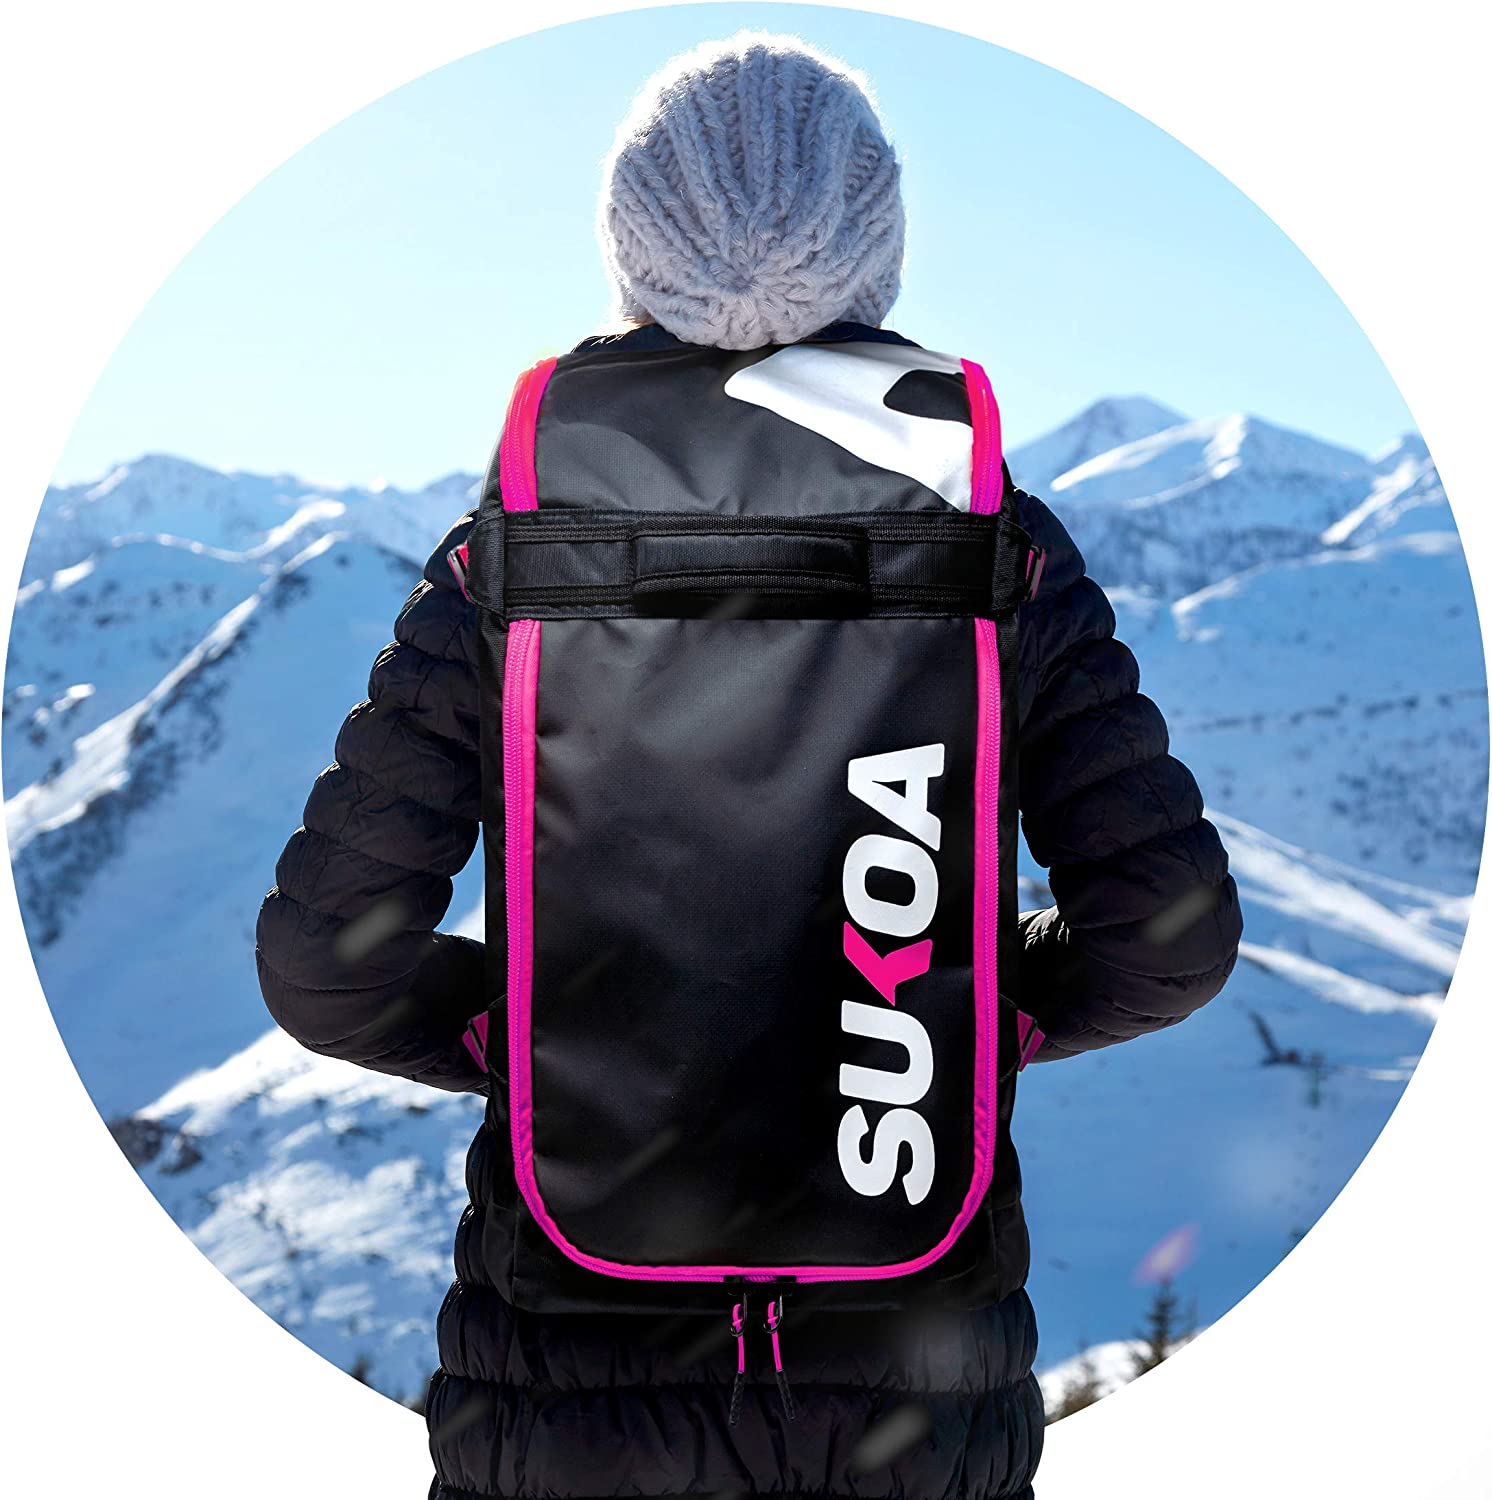 Helmet Travel Bag for Flying Air Travel Snowboard /& Ski Boots Ski Boot Bag Backpack 50L Carrier Luggage with Adjustable Straps/… Gloves, Jacket, Goggles Ergonomic Skiing Gear Accessories